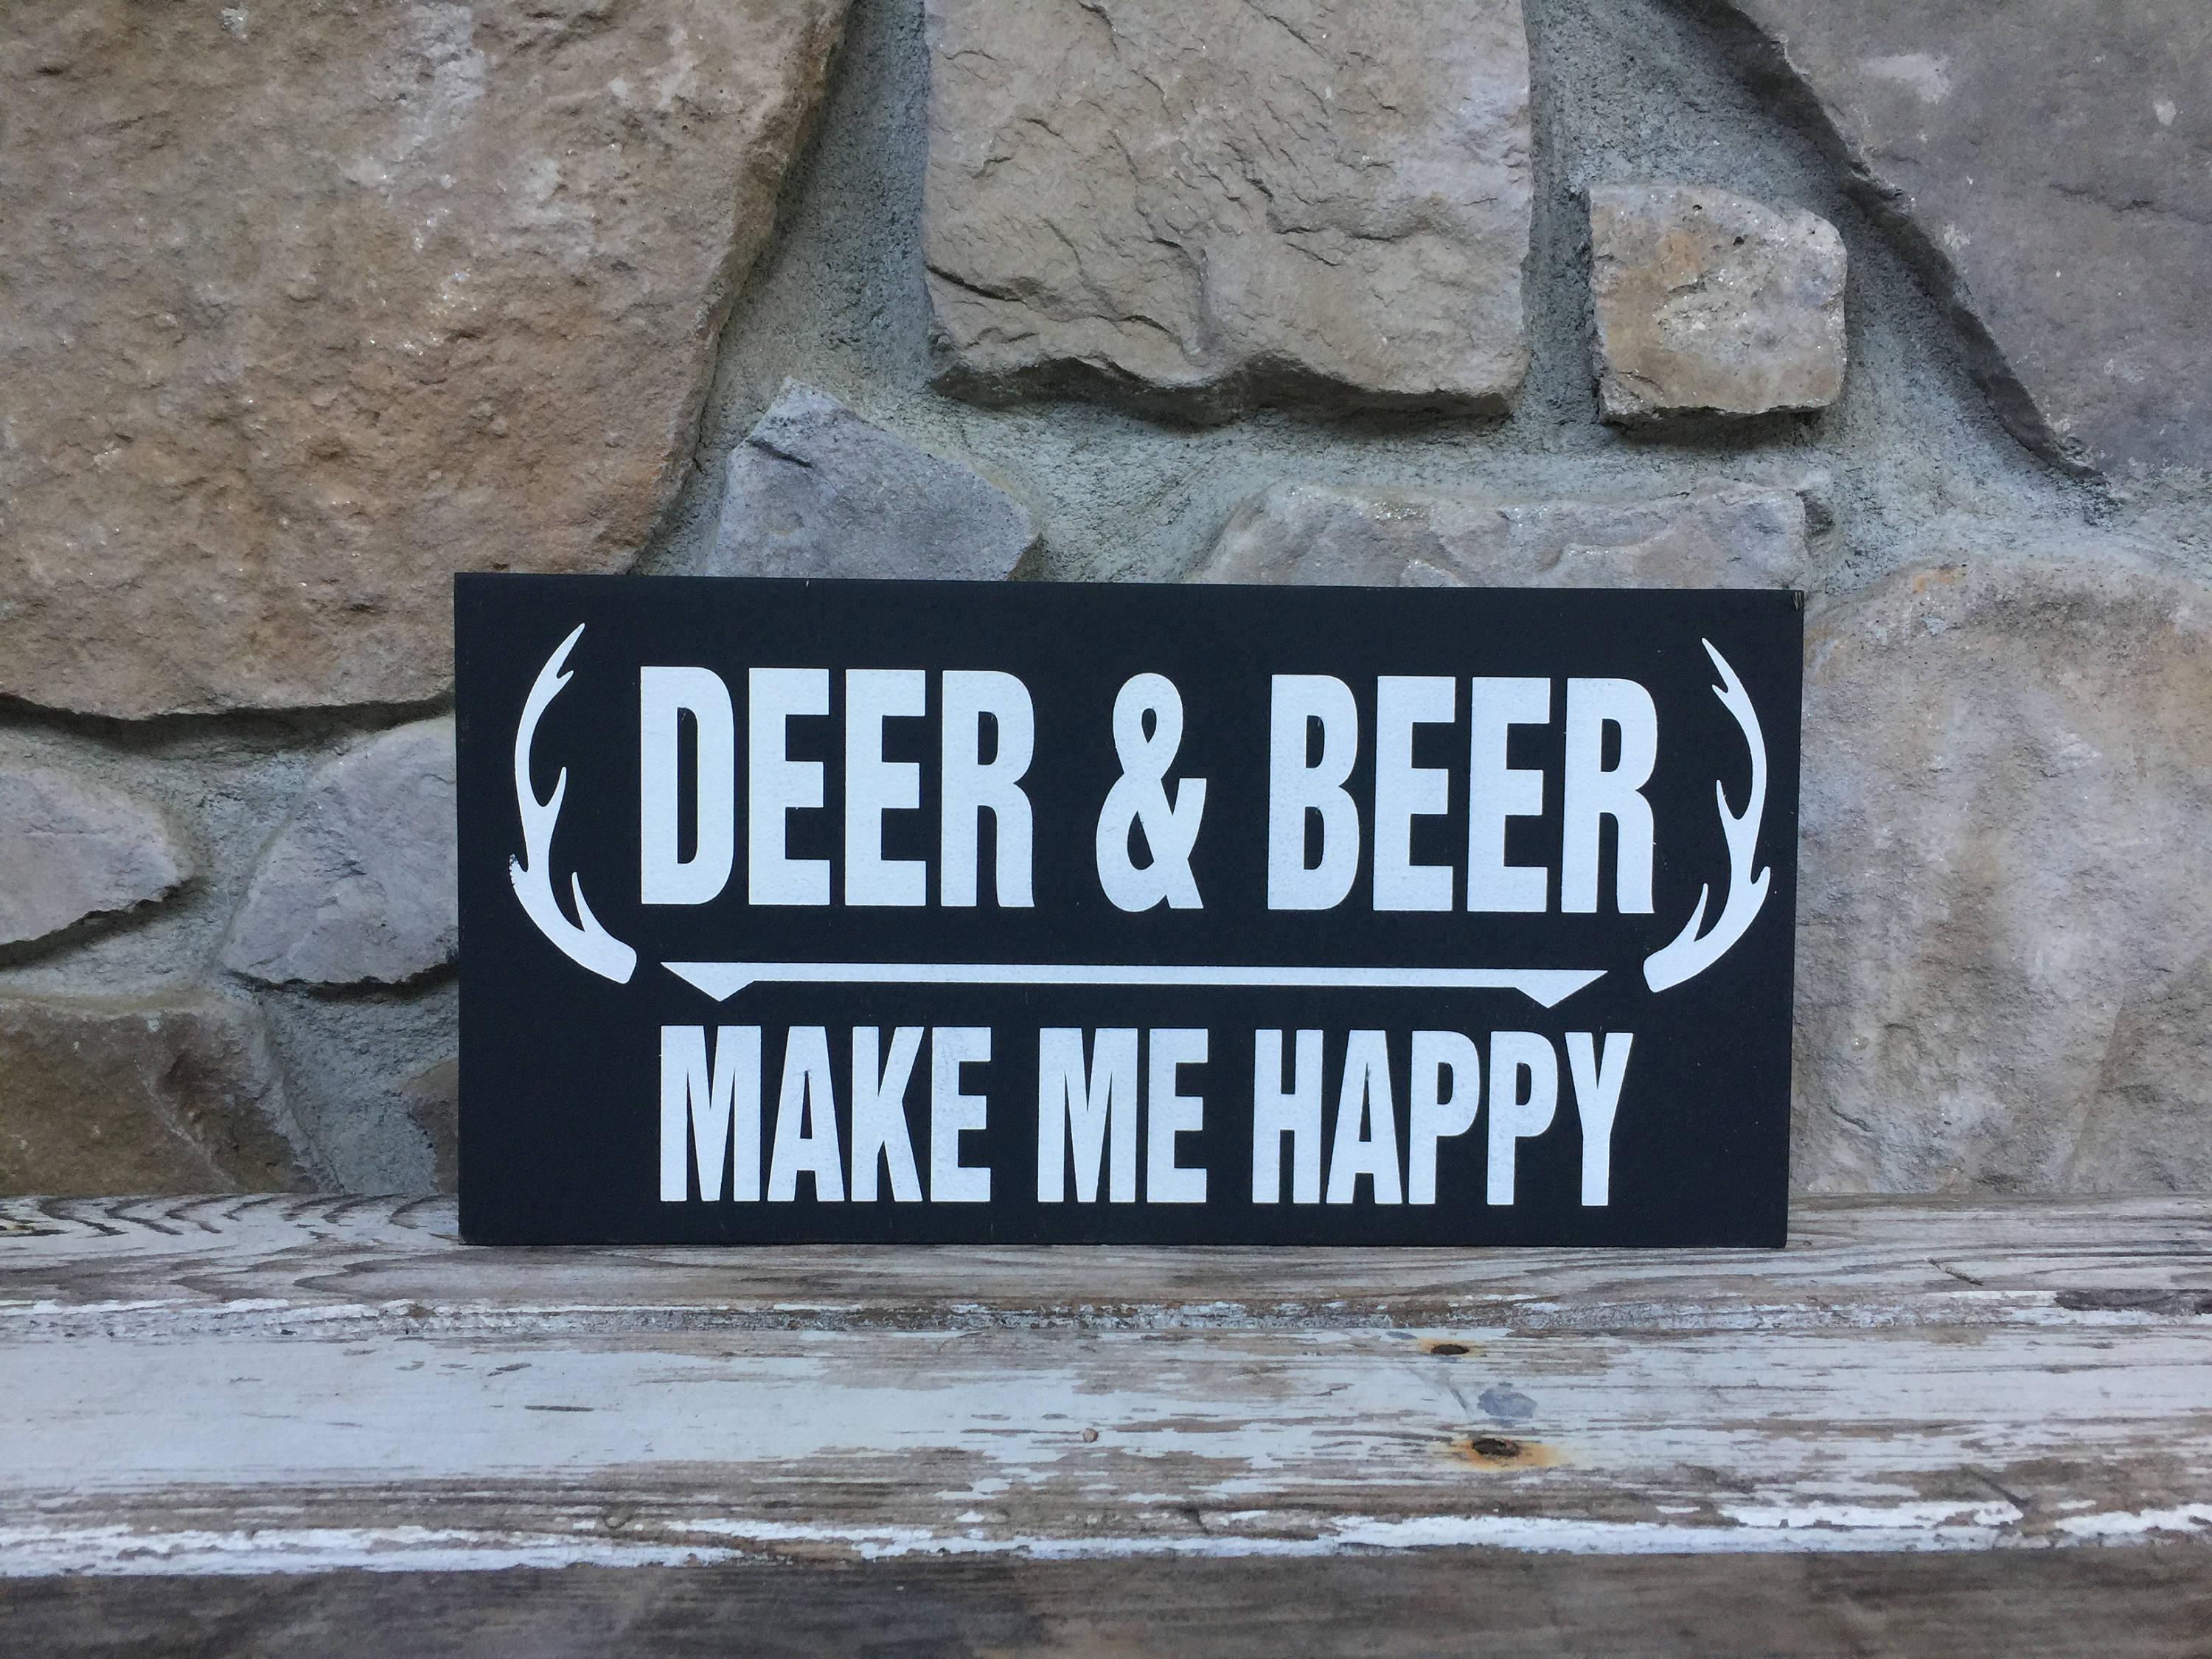 Hunters Man Cave Signs : Deer & beer make me happy wood sign gifts for him hunting